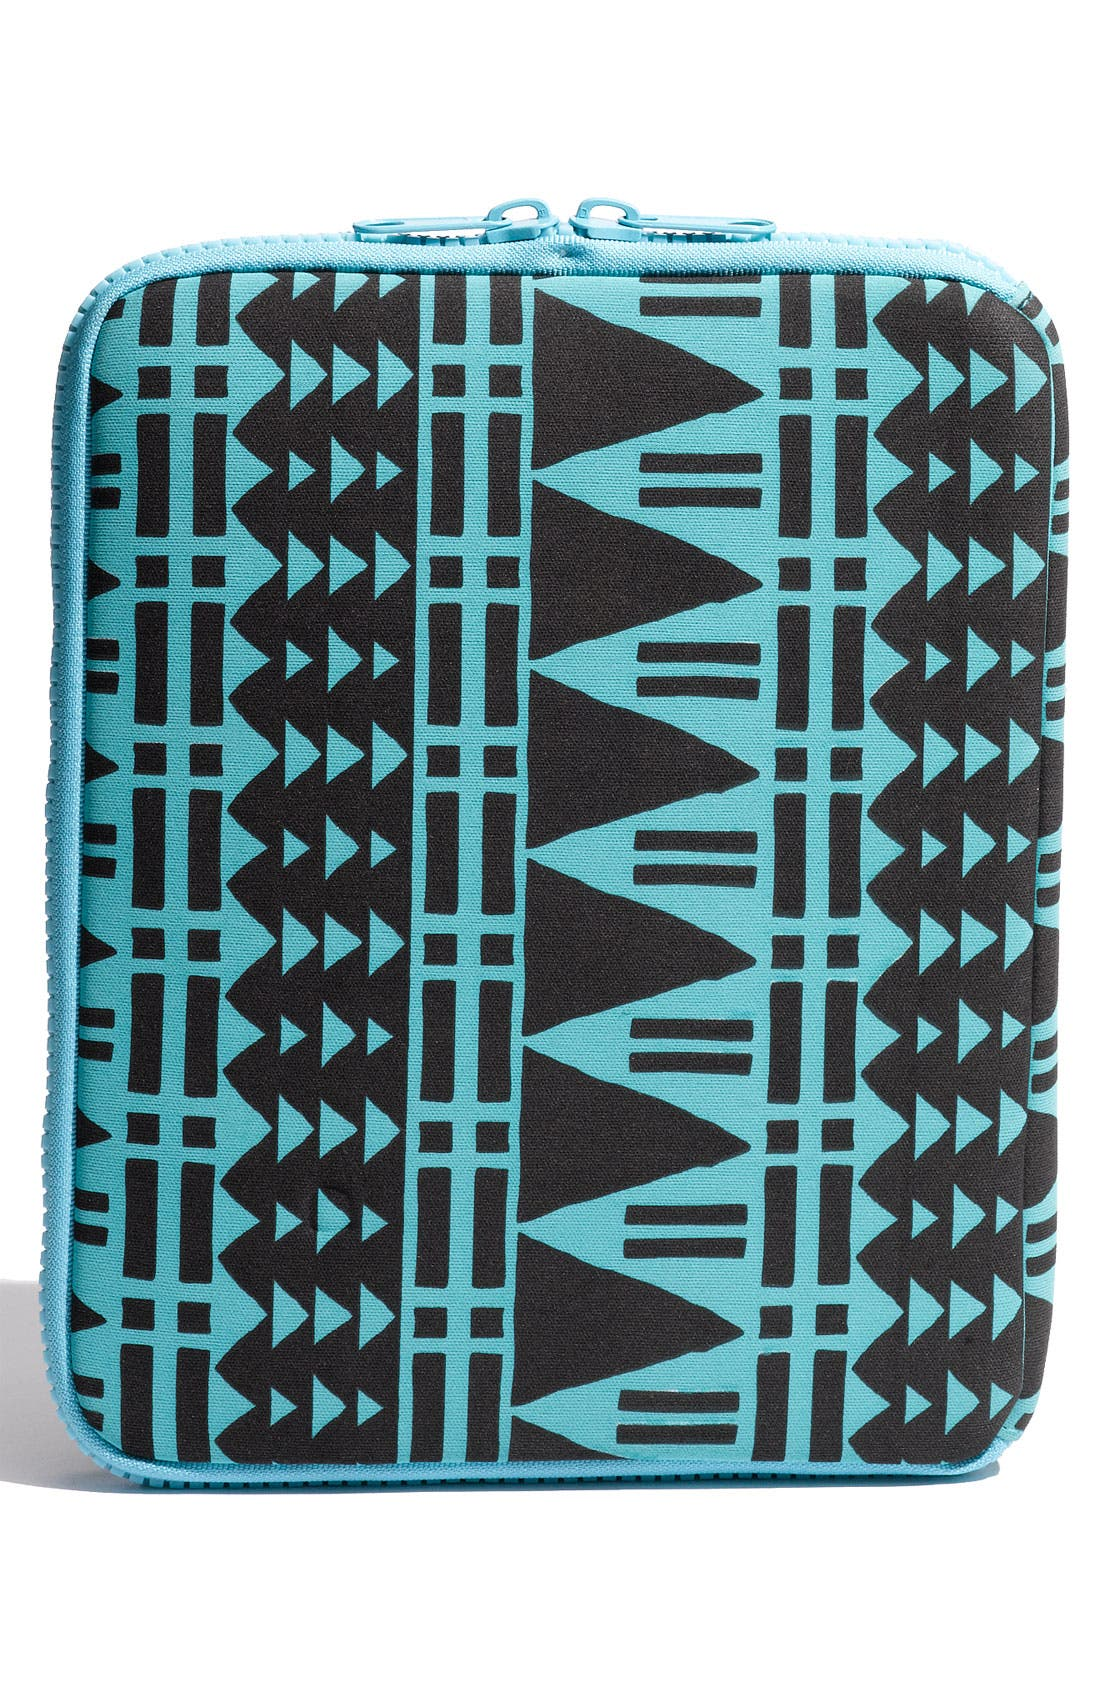 Alternate Image 3  - Lulu Geometric Printed iPad Case